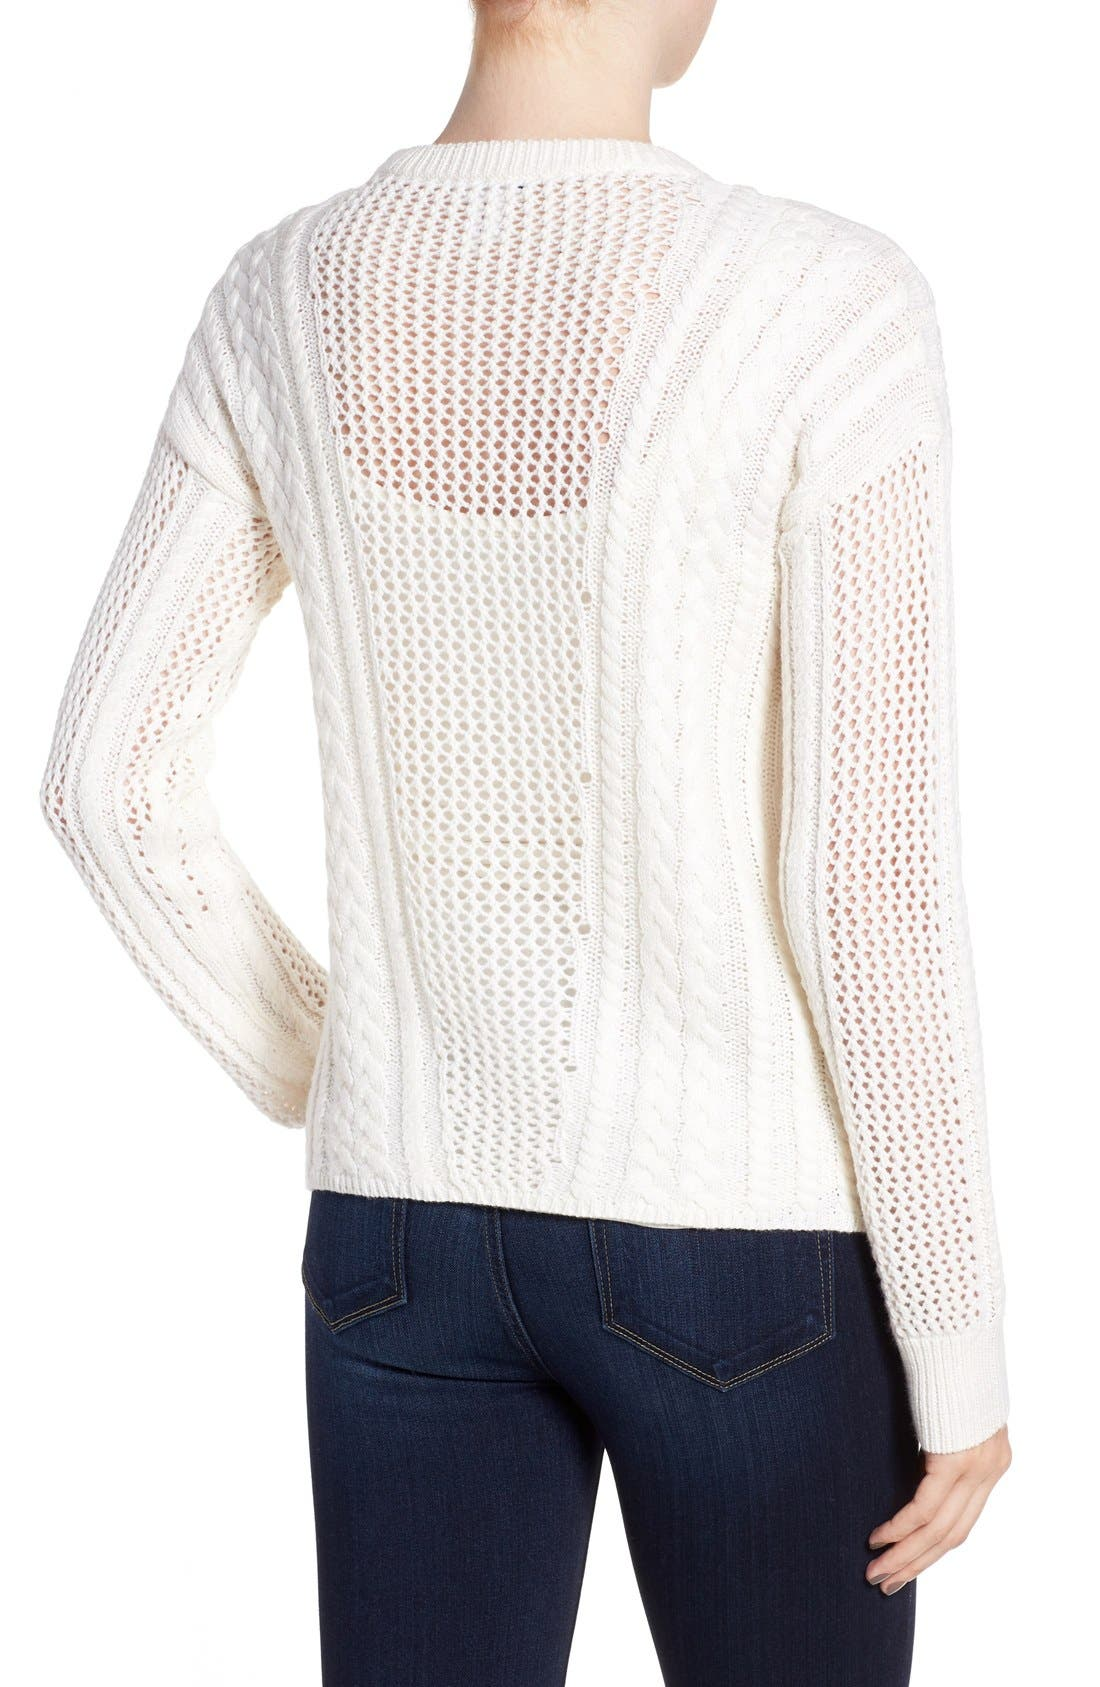 Amory Open Knit Sweater,                             Alternate thumbnail 2, color,                             Ivory